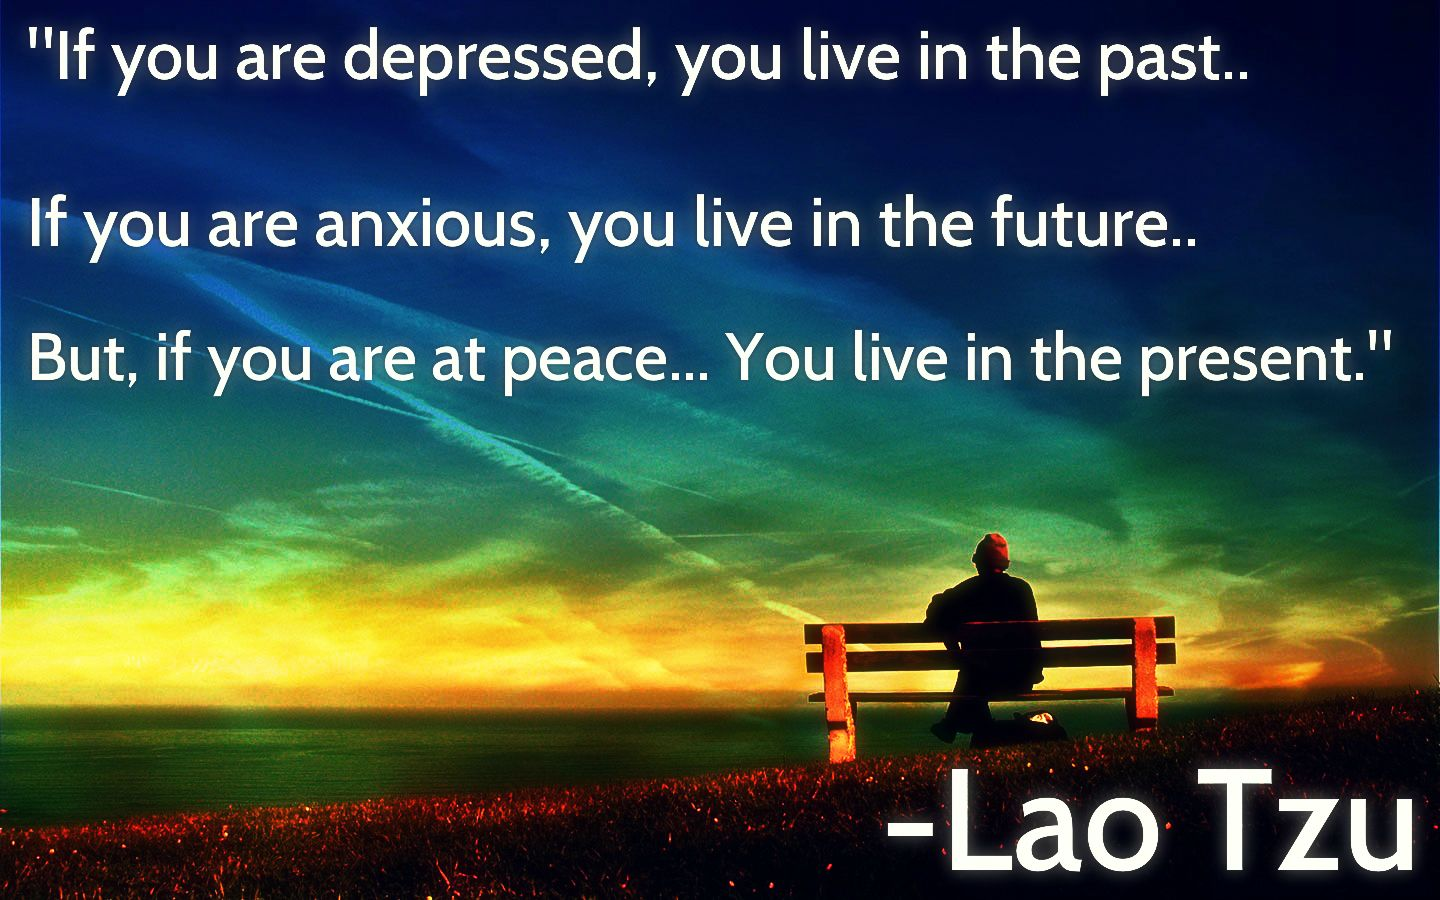 10491-if-you-are-depressed-lao-tzu-quotes